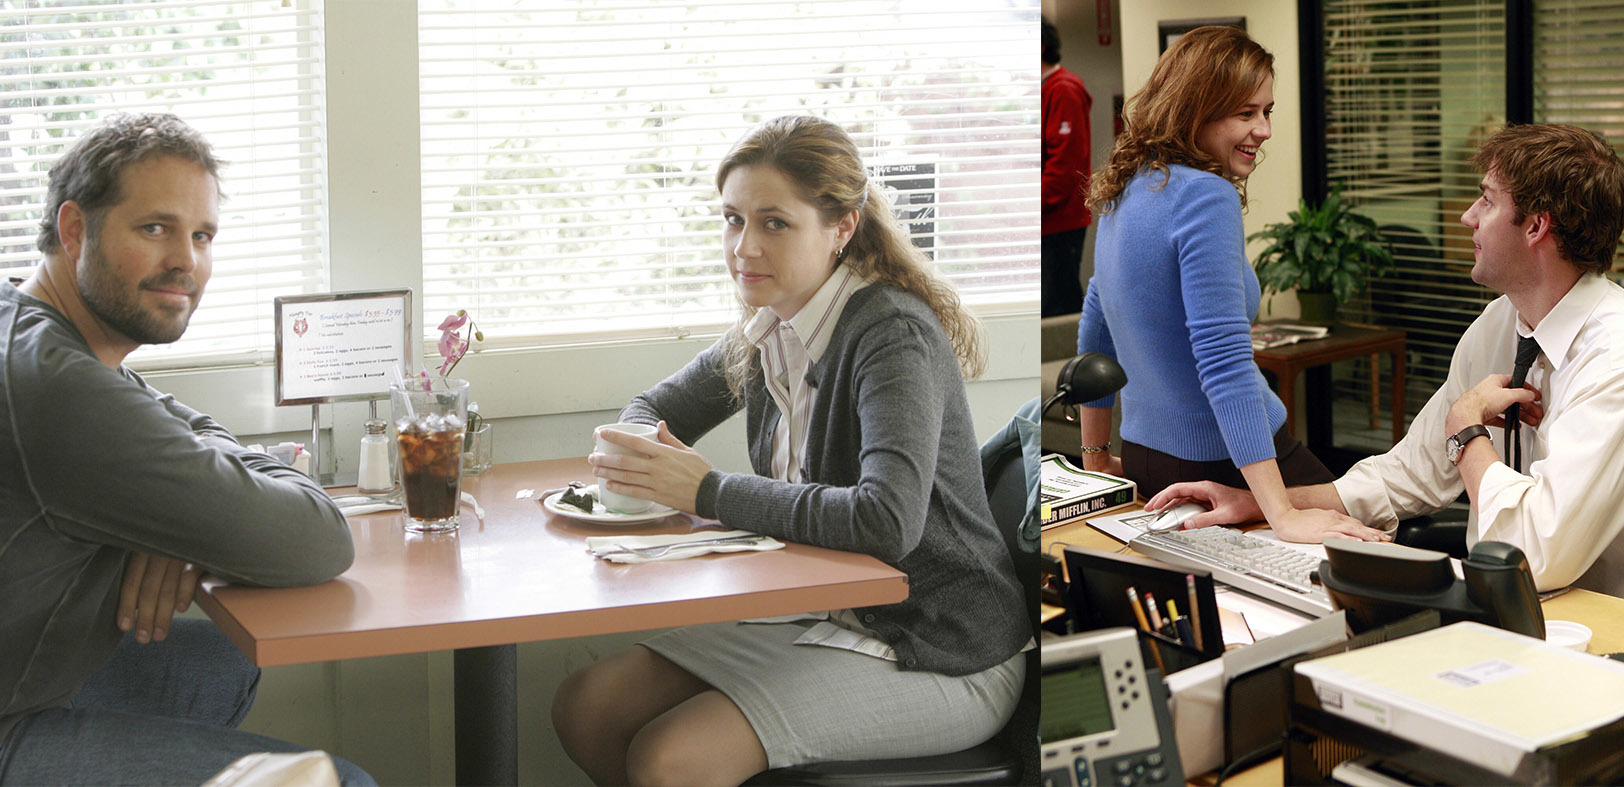 """David Denman and Jenna Fischer on """"The Office."""" / Jenna Fischer and John Krasinski on """"The Office."""""""